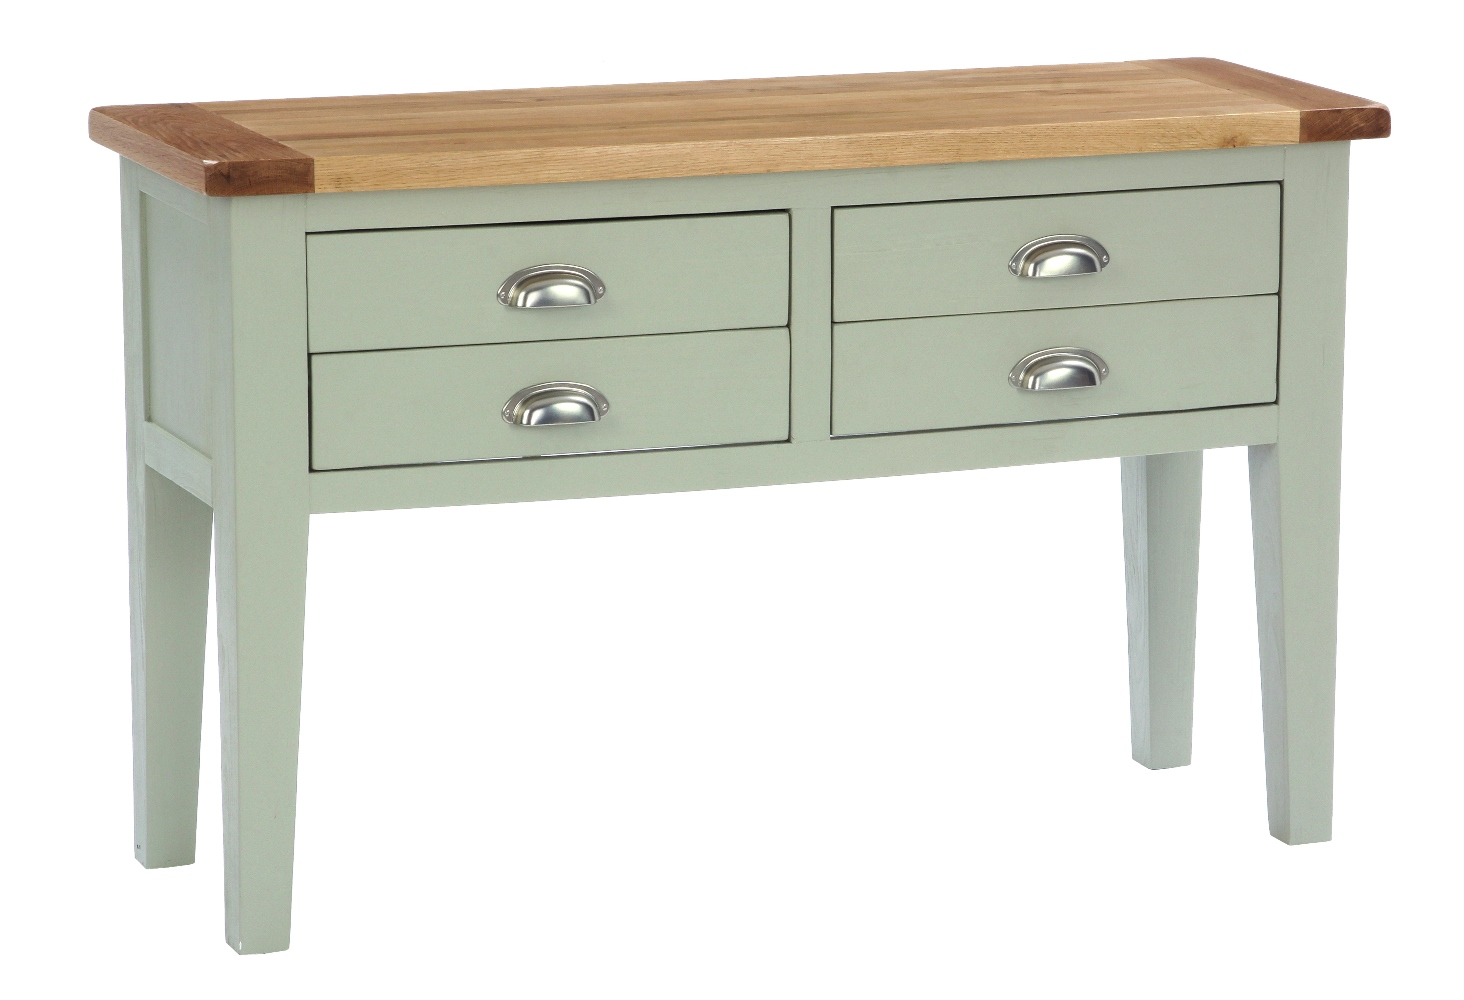 4 Drawer Hall Table  w 120 x d 40 x h 75 cm  €467    Product Code: ANB016